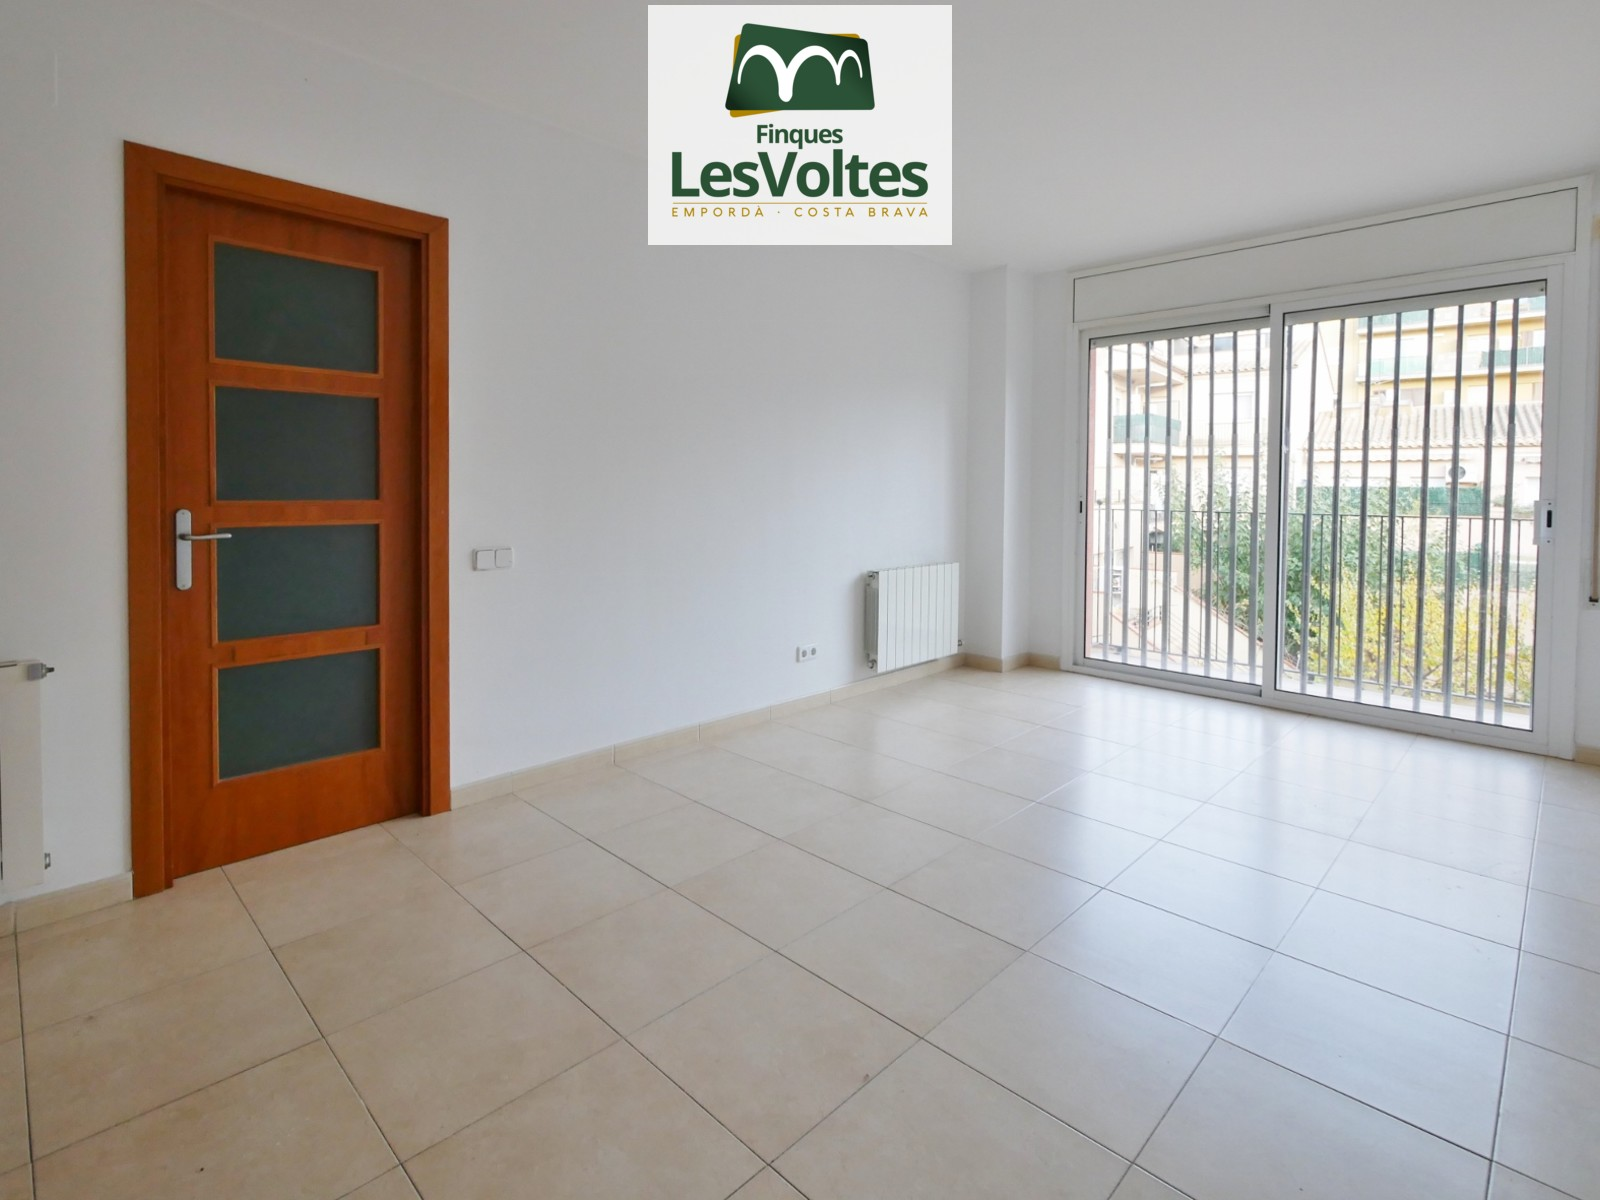 Flat with balcony for sale Palafrugell. Small community with lift in downtown area.